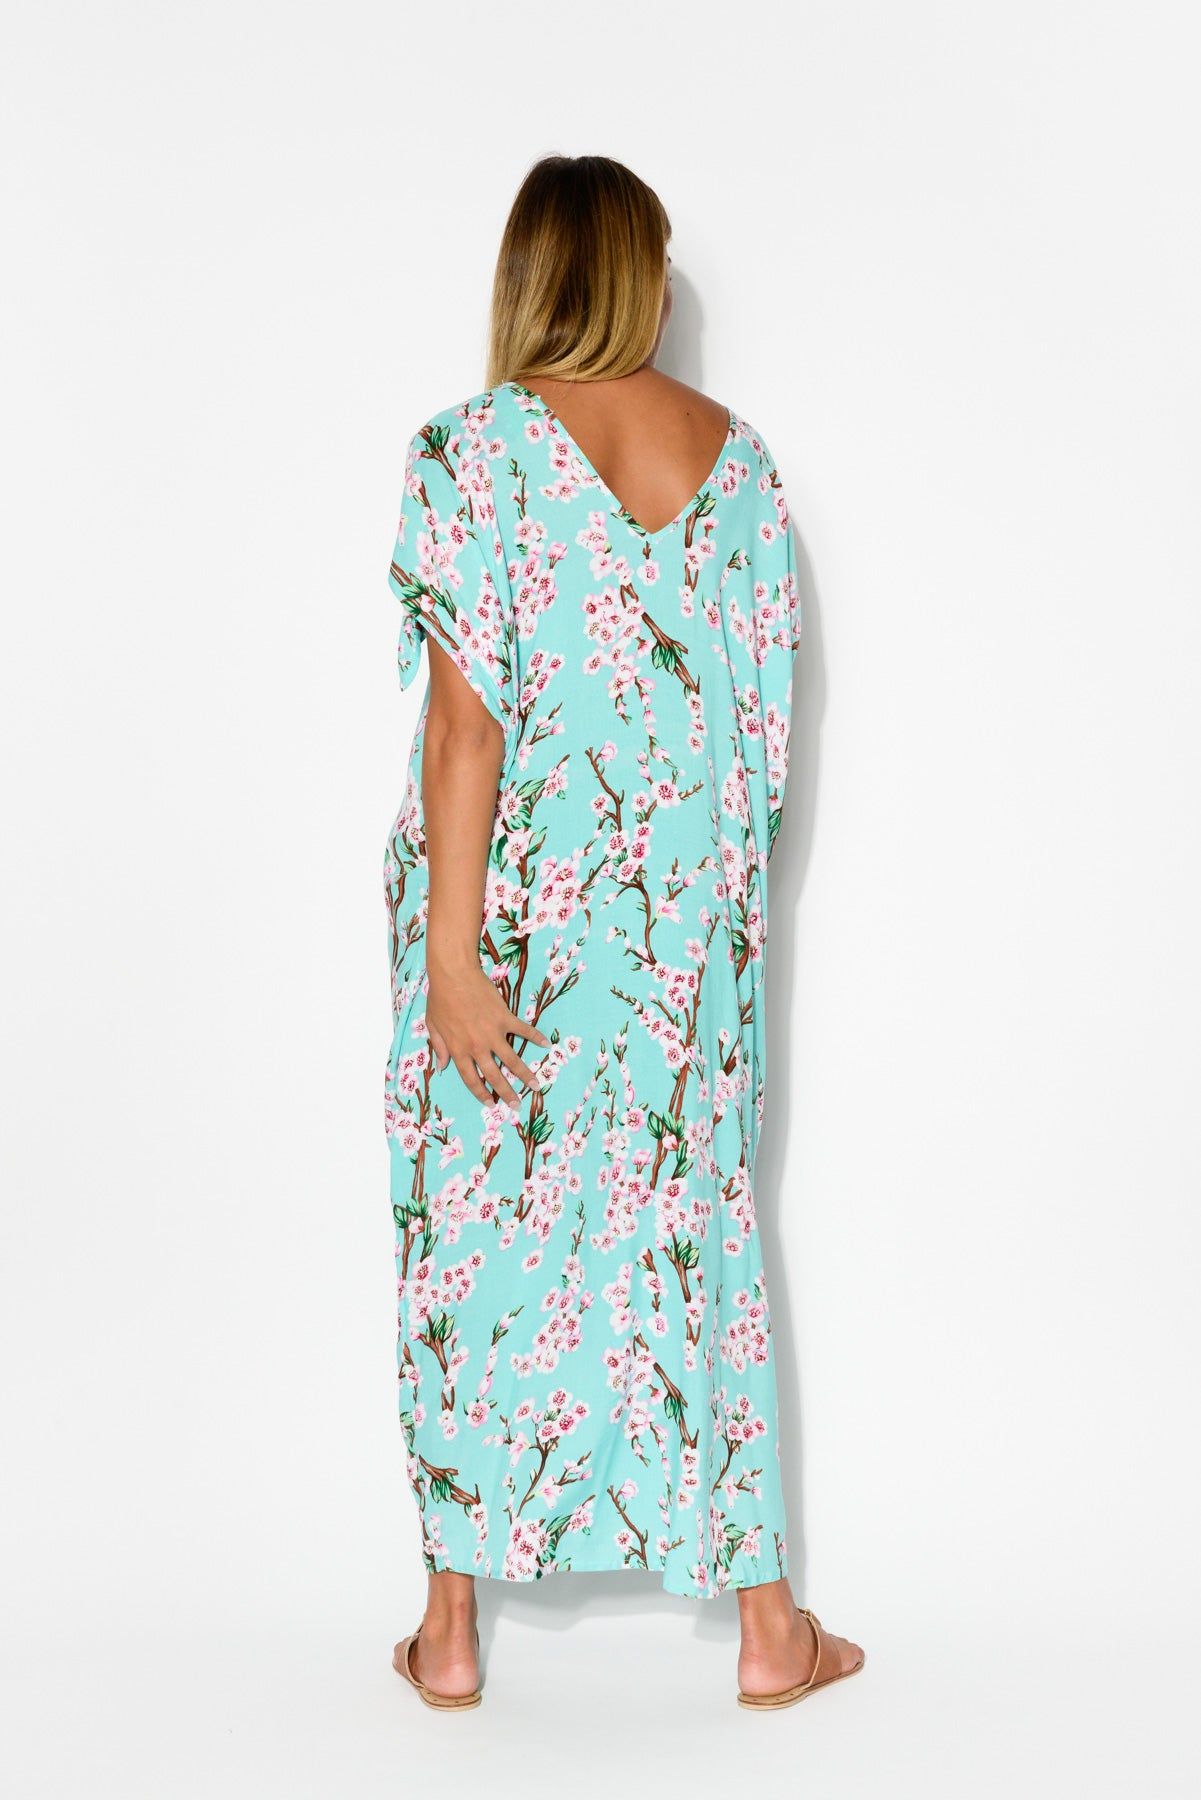 Mykonos Aqua Floral Cold Shoulder Kaftan - Blue Bungalow